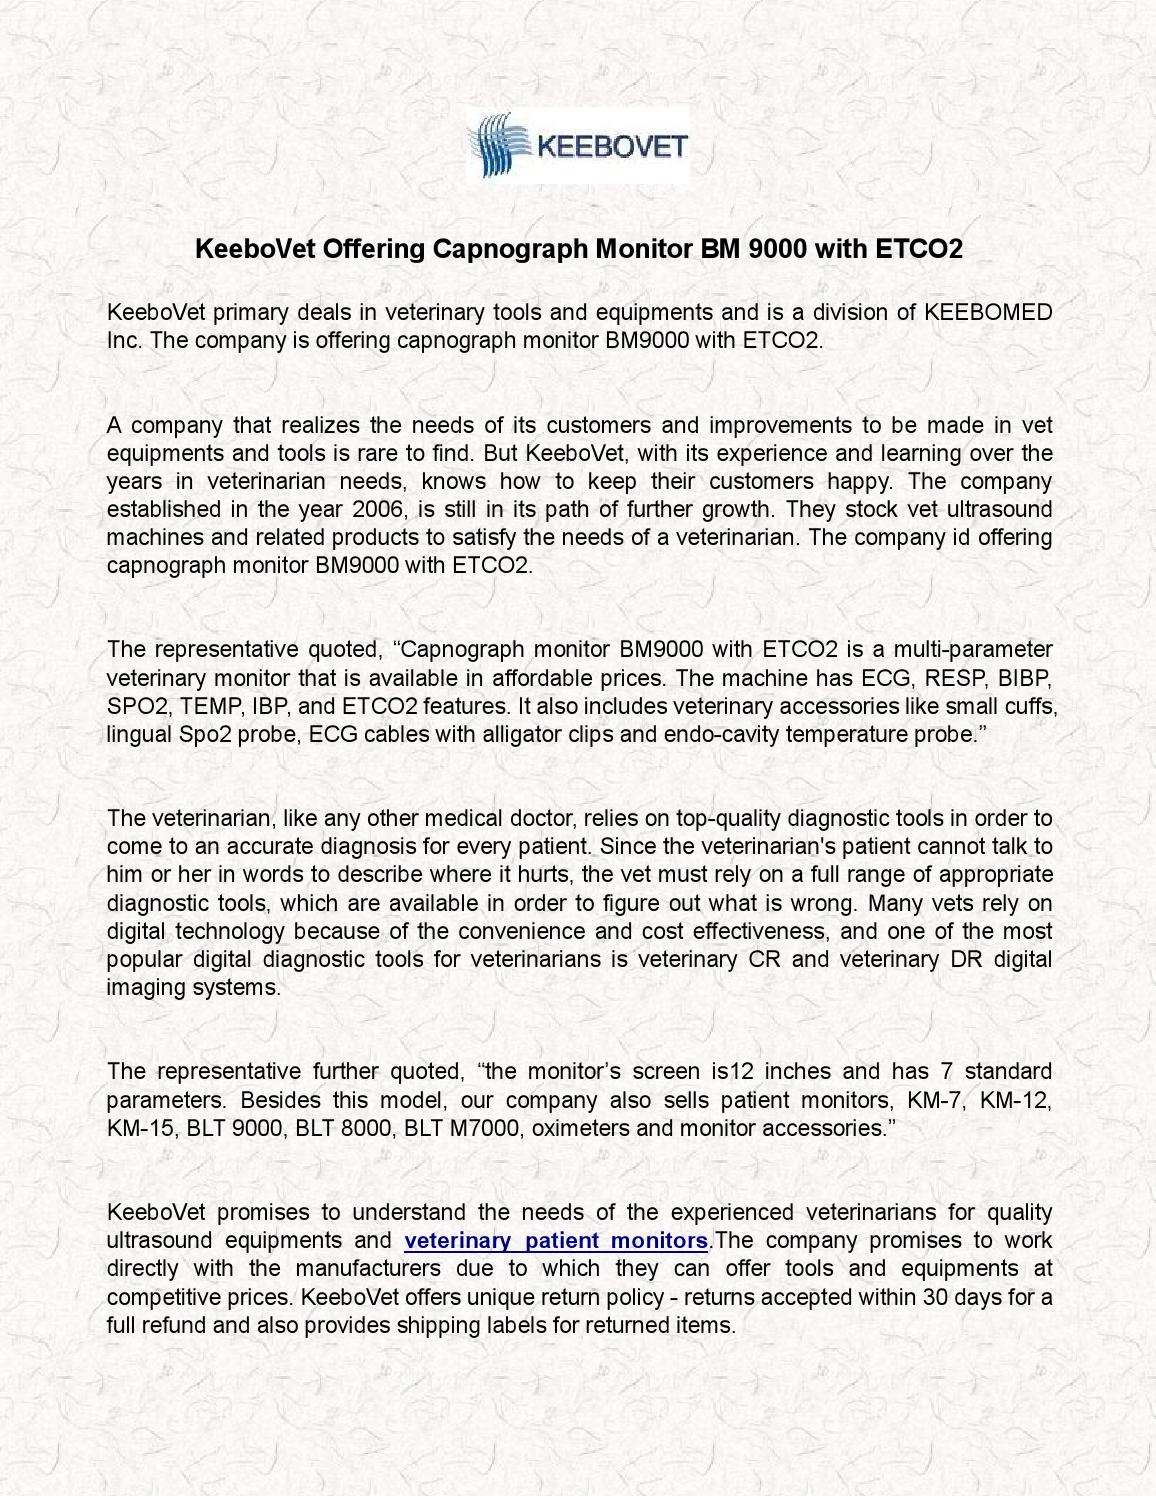 Keebovet offering capnograph monitor bm 9000 with etco2 by